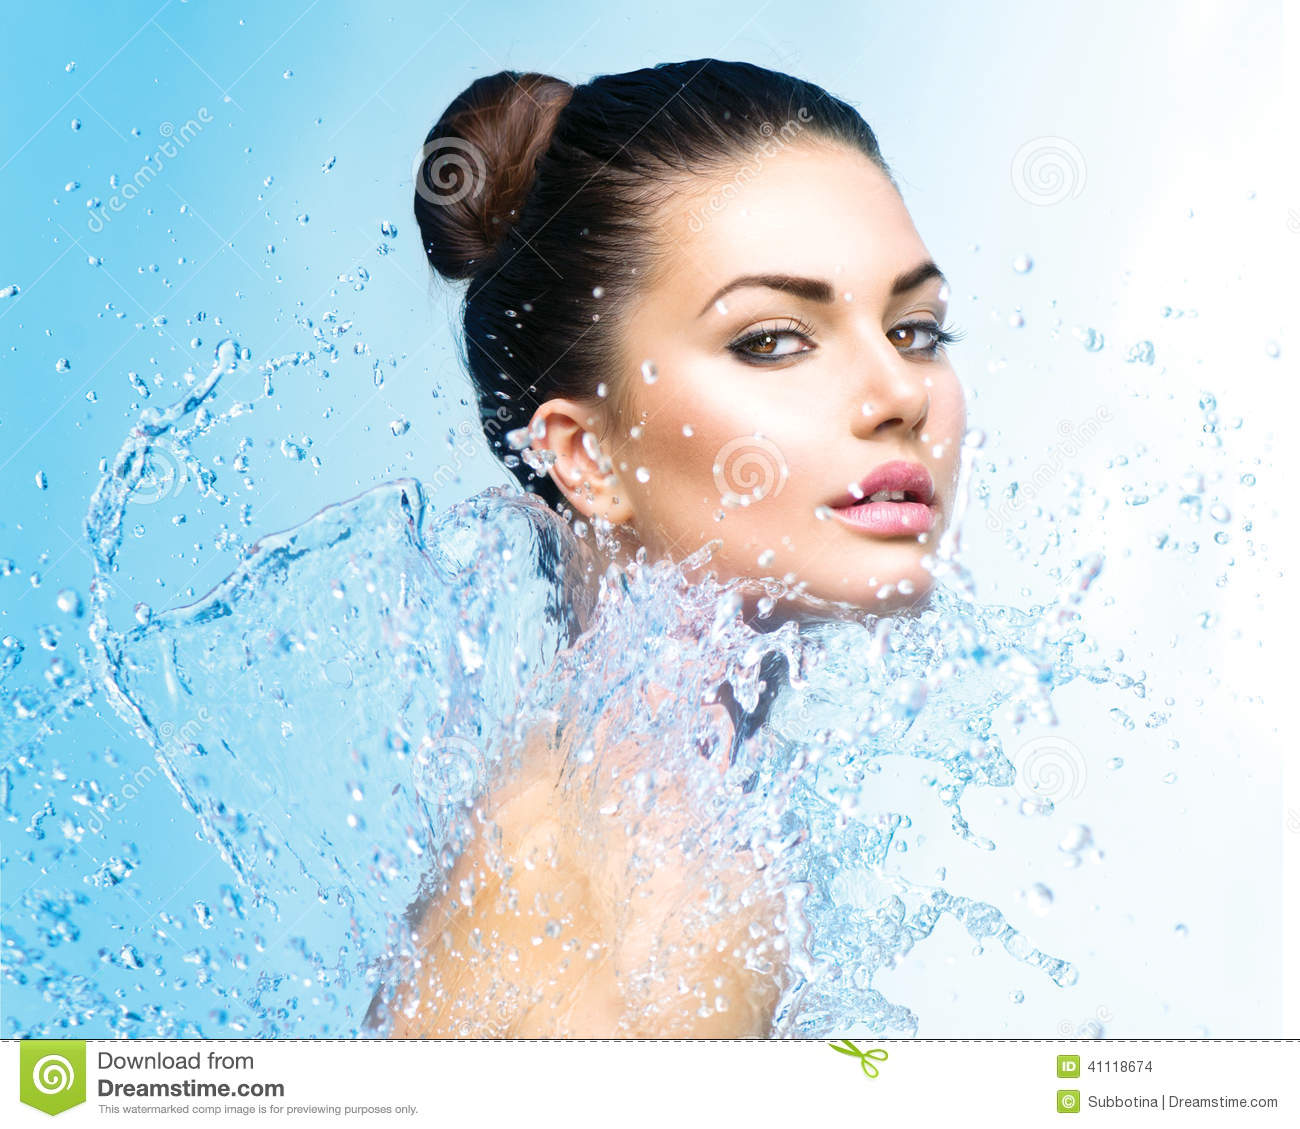 Beautiful girl under splash of water